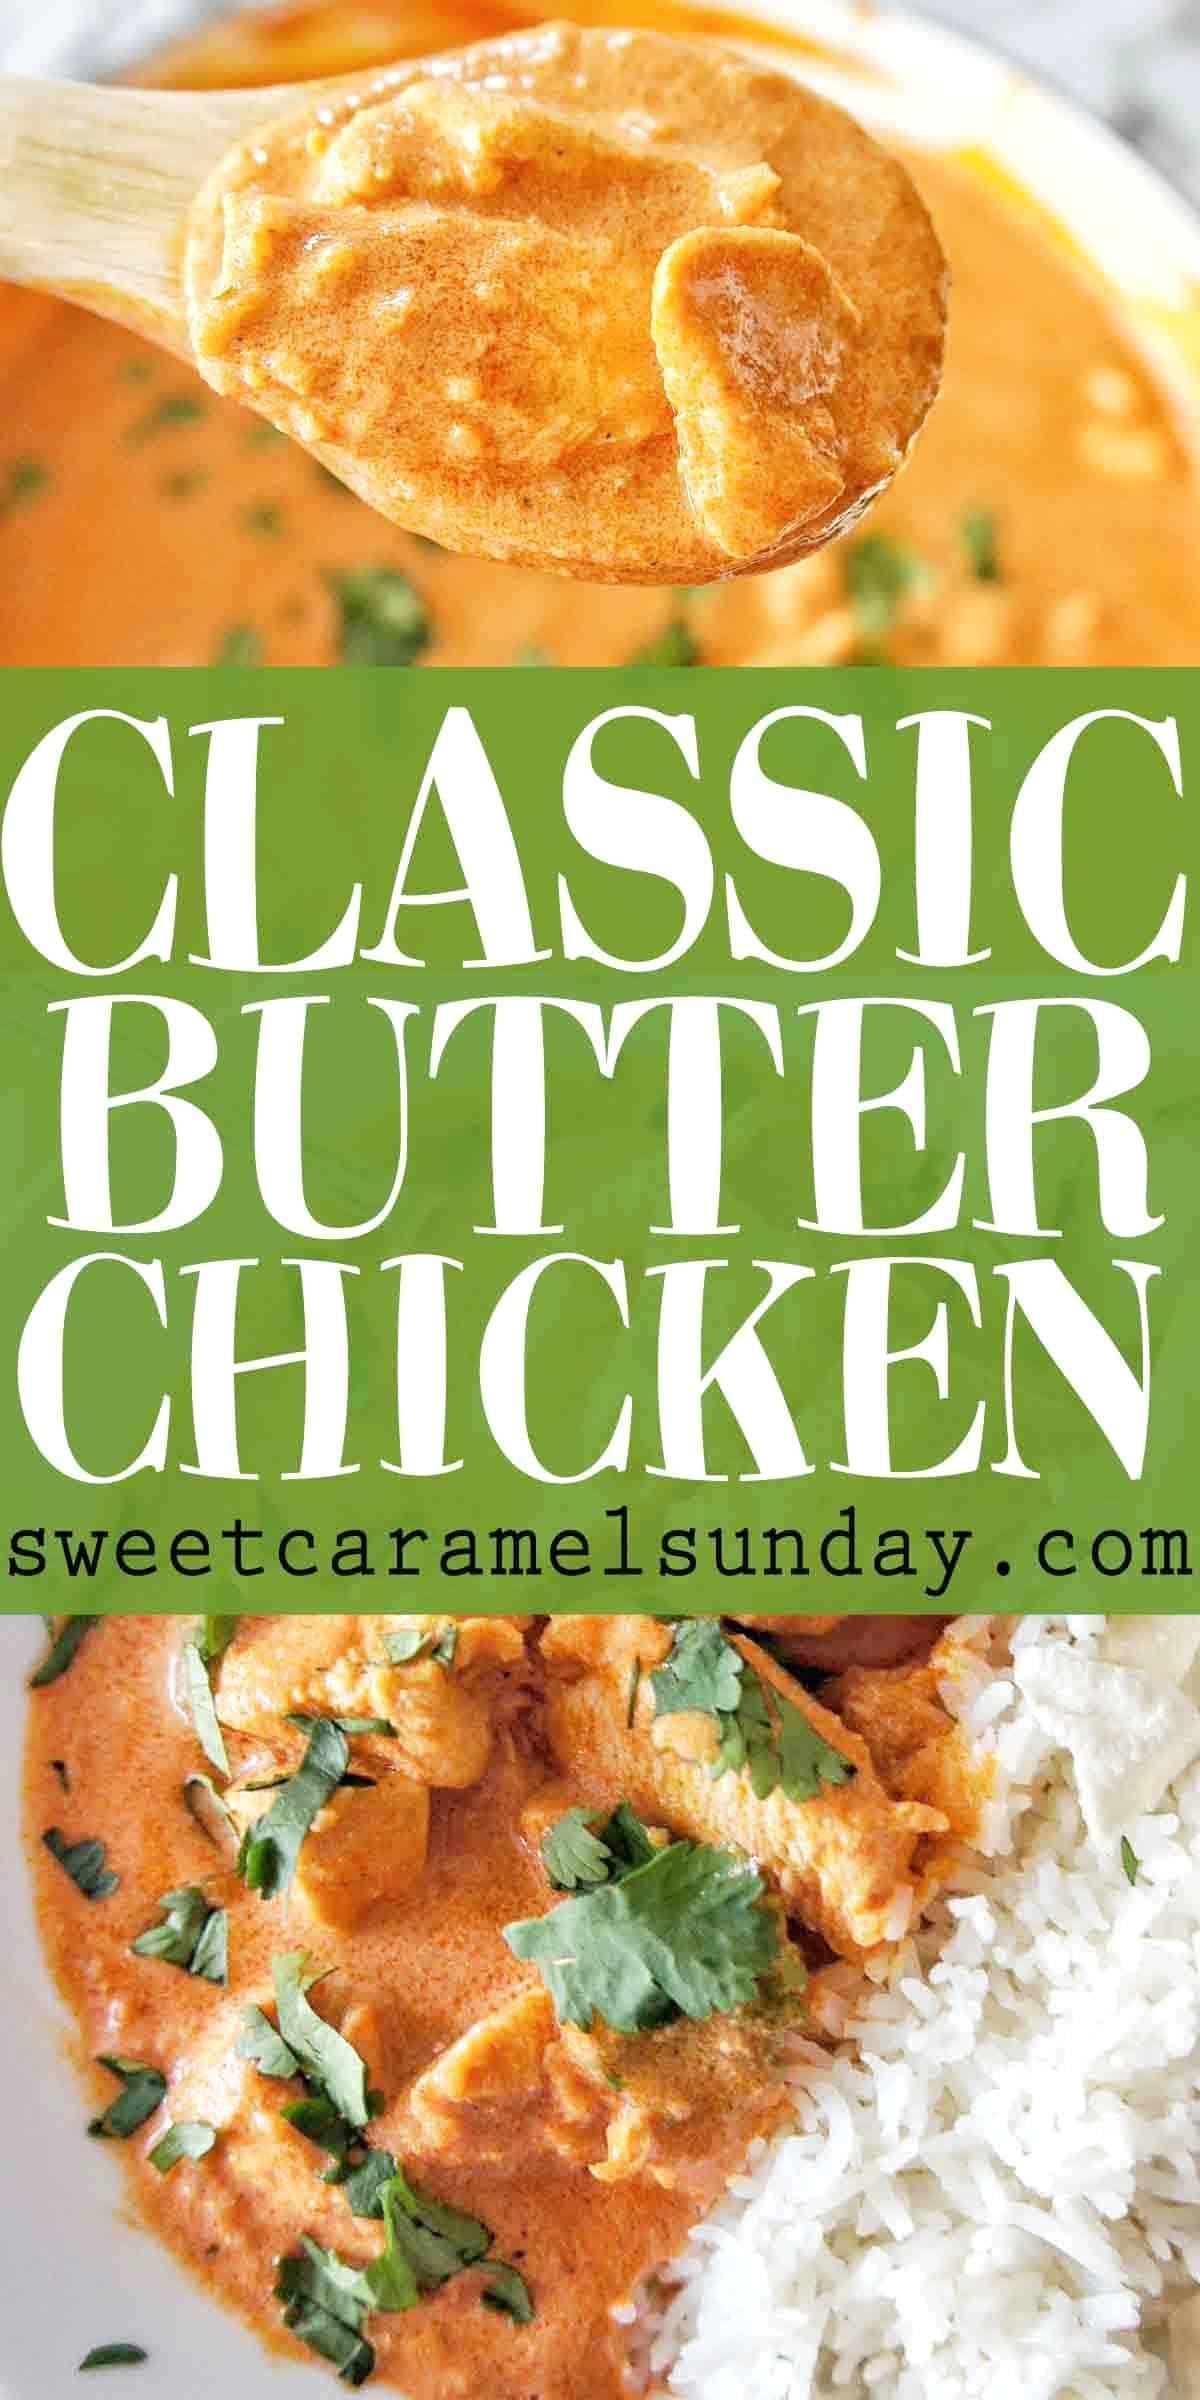 Easy Butter Chicken with text overlay